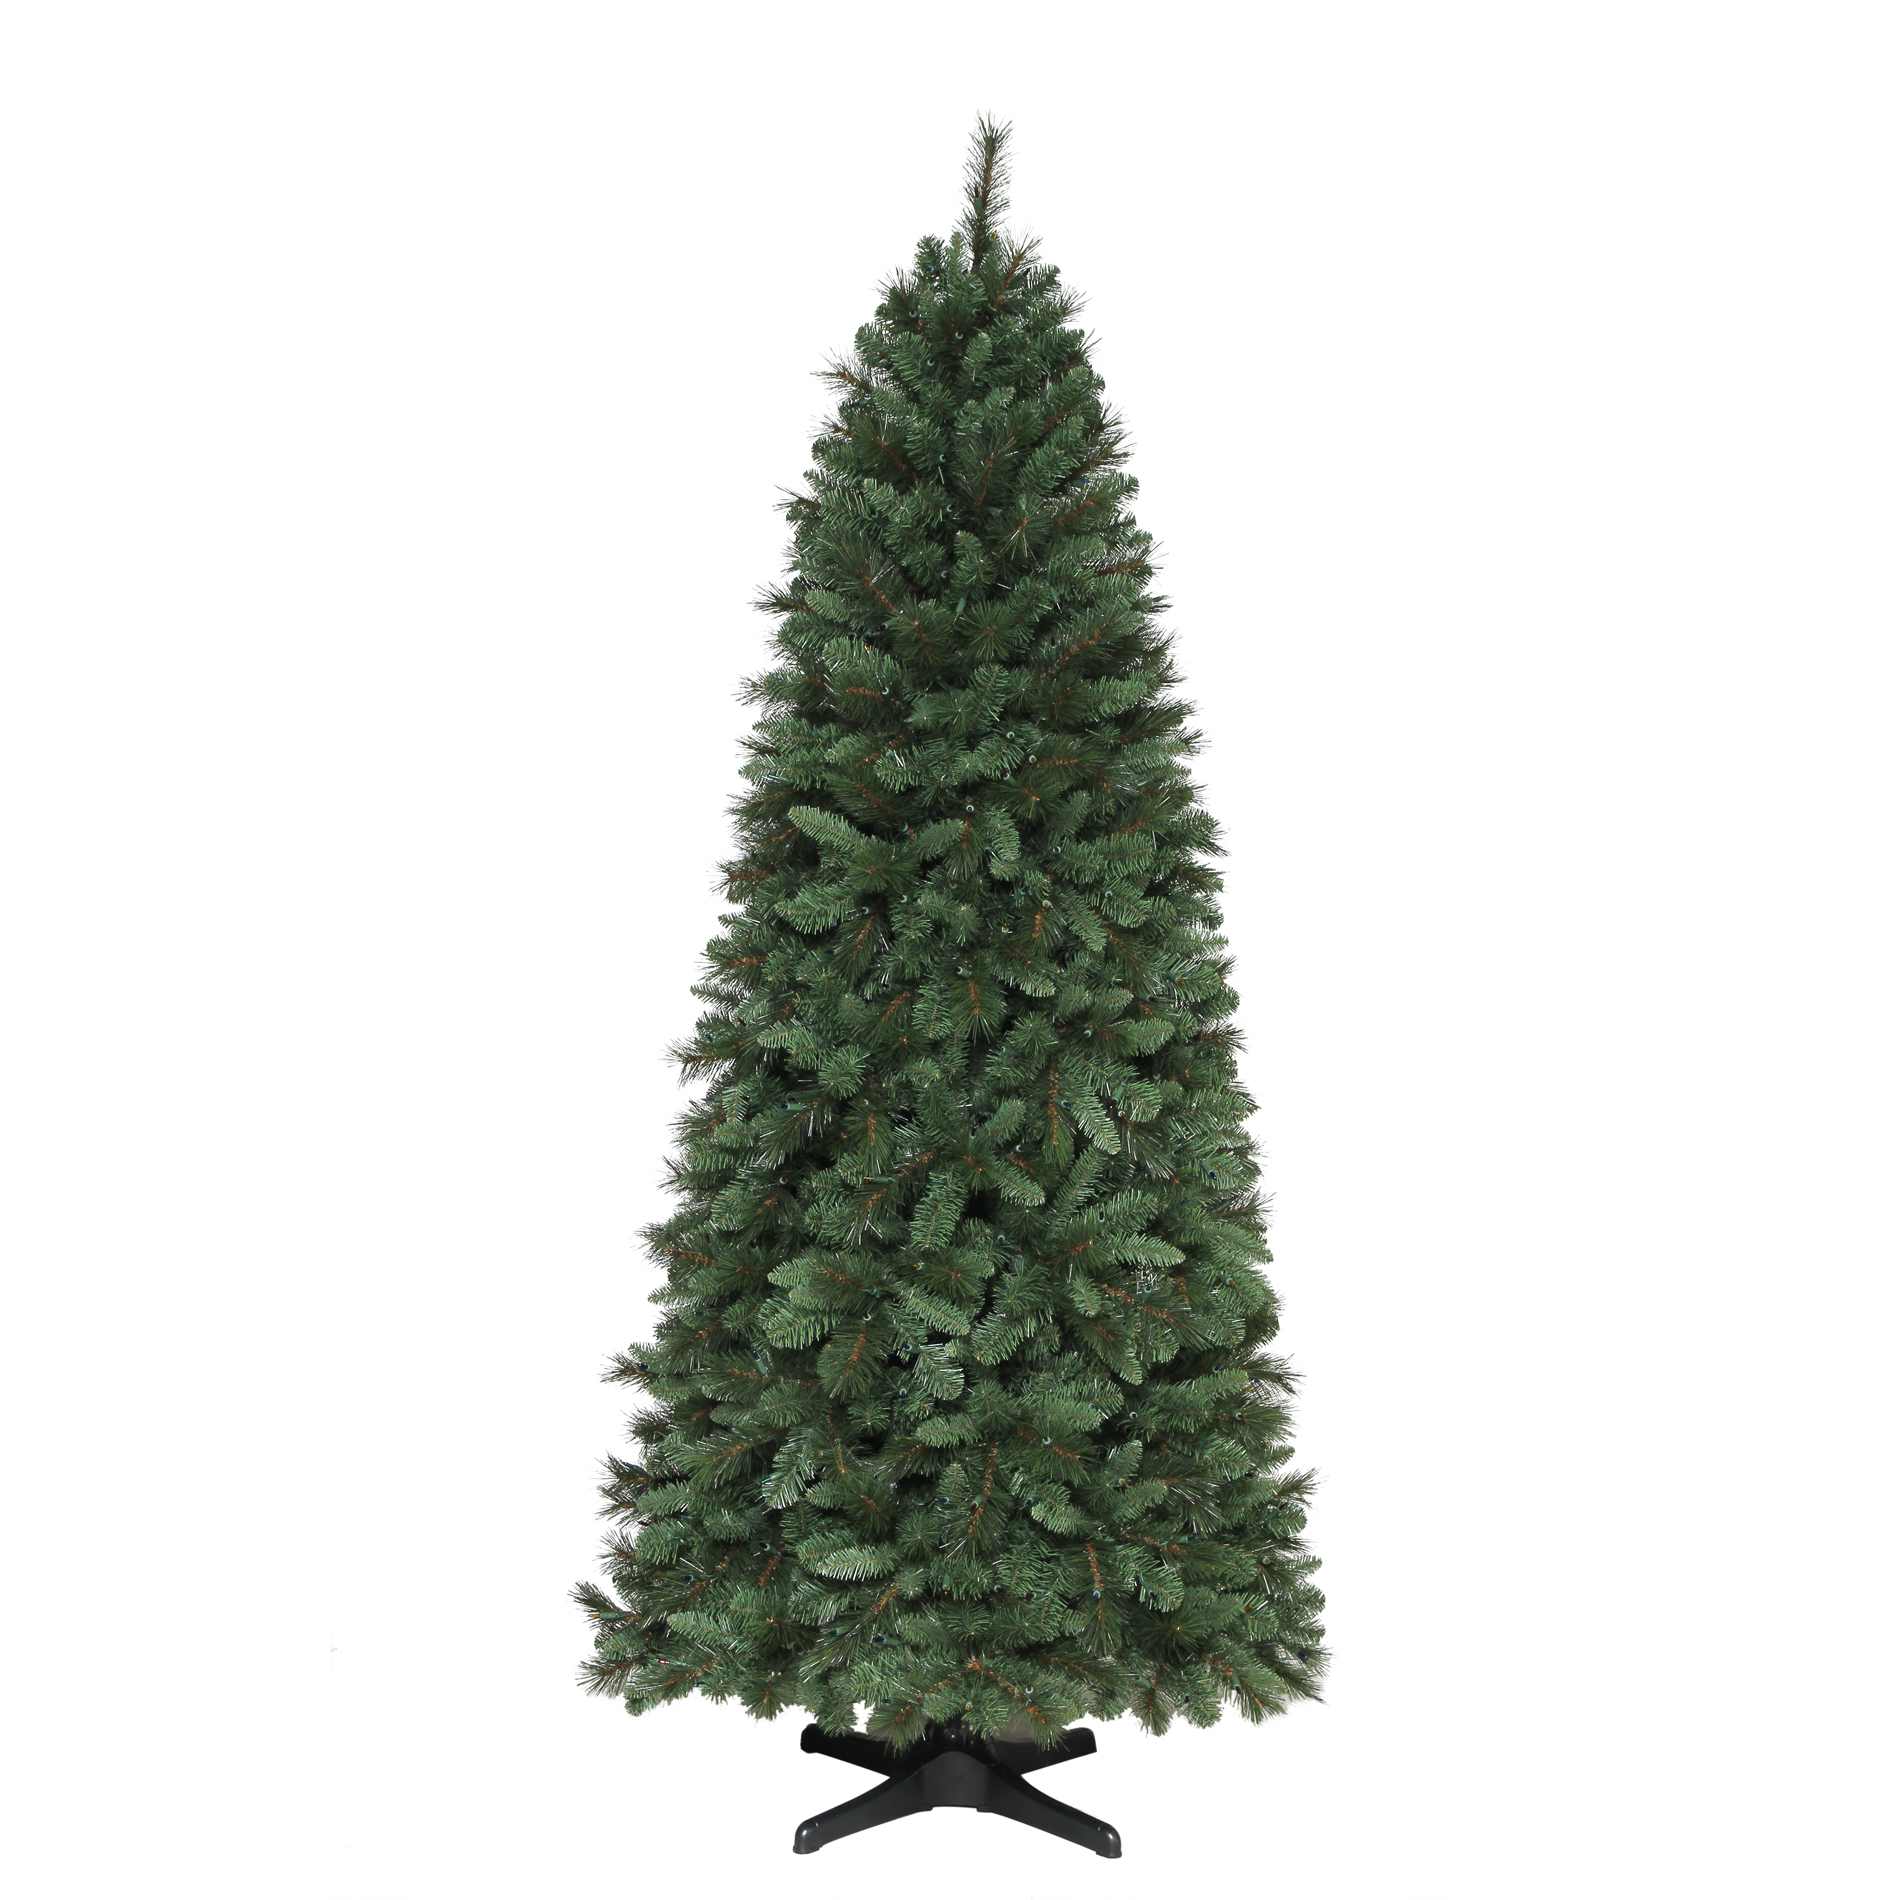 Donner and Blitzen 7.5 Ft Pre-Lit Clear Light Aspen Slim Pine Artificial Christmas Tree